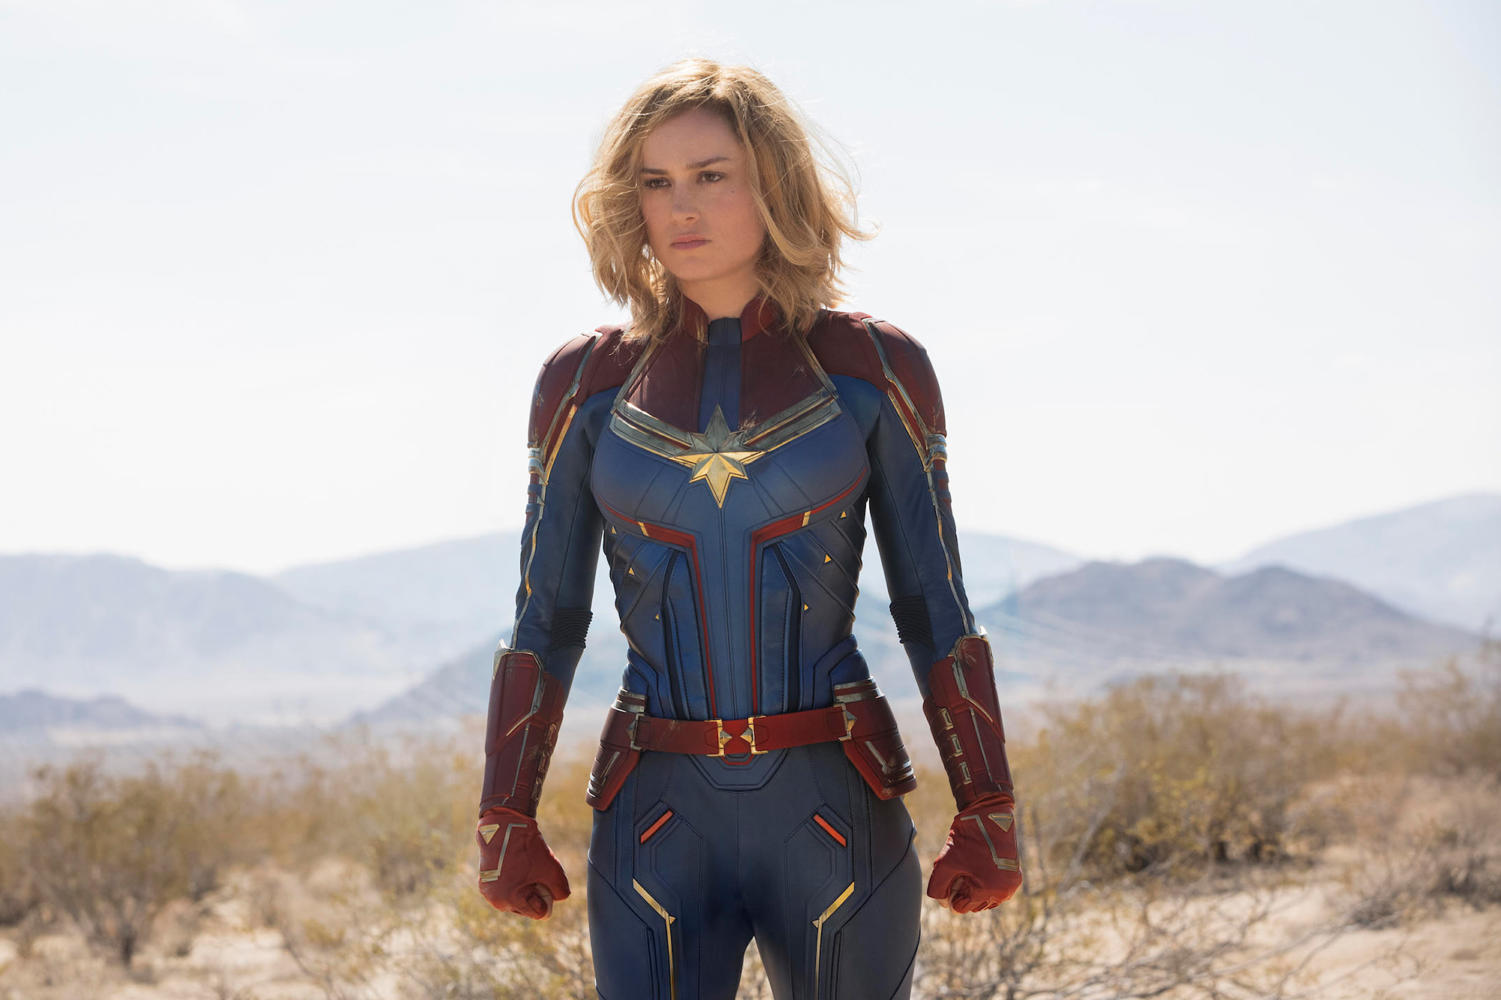 Brie Larson portrays the titular character Carol Danvers, known as Vers, in